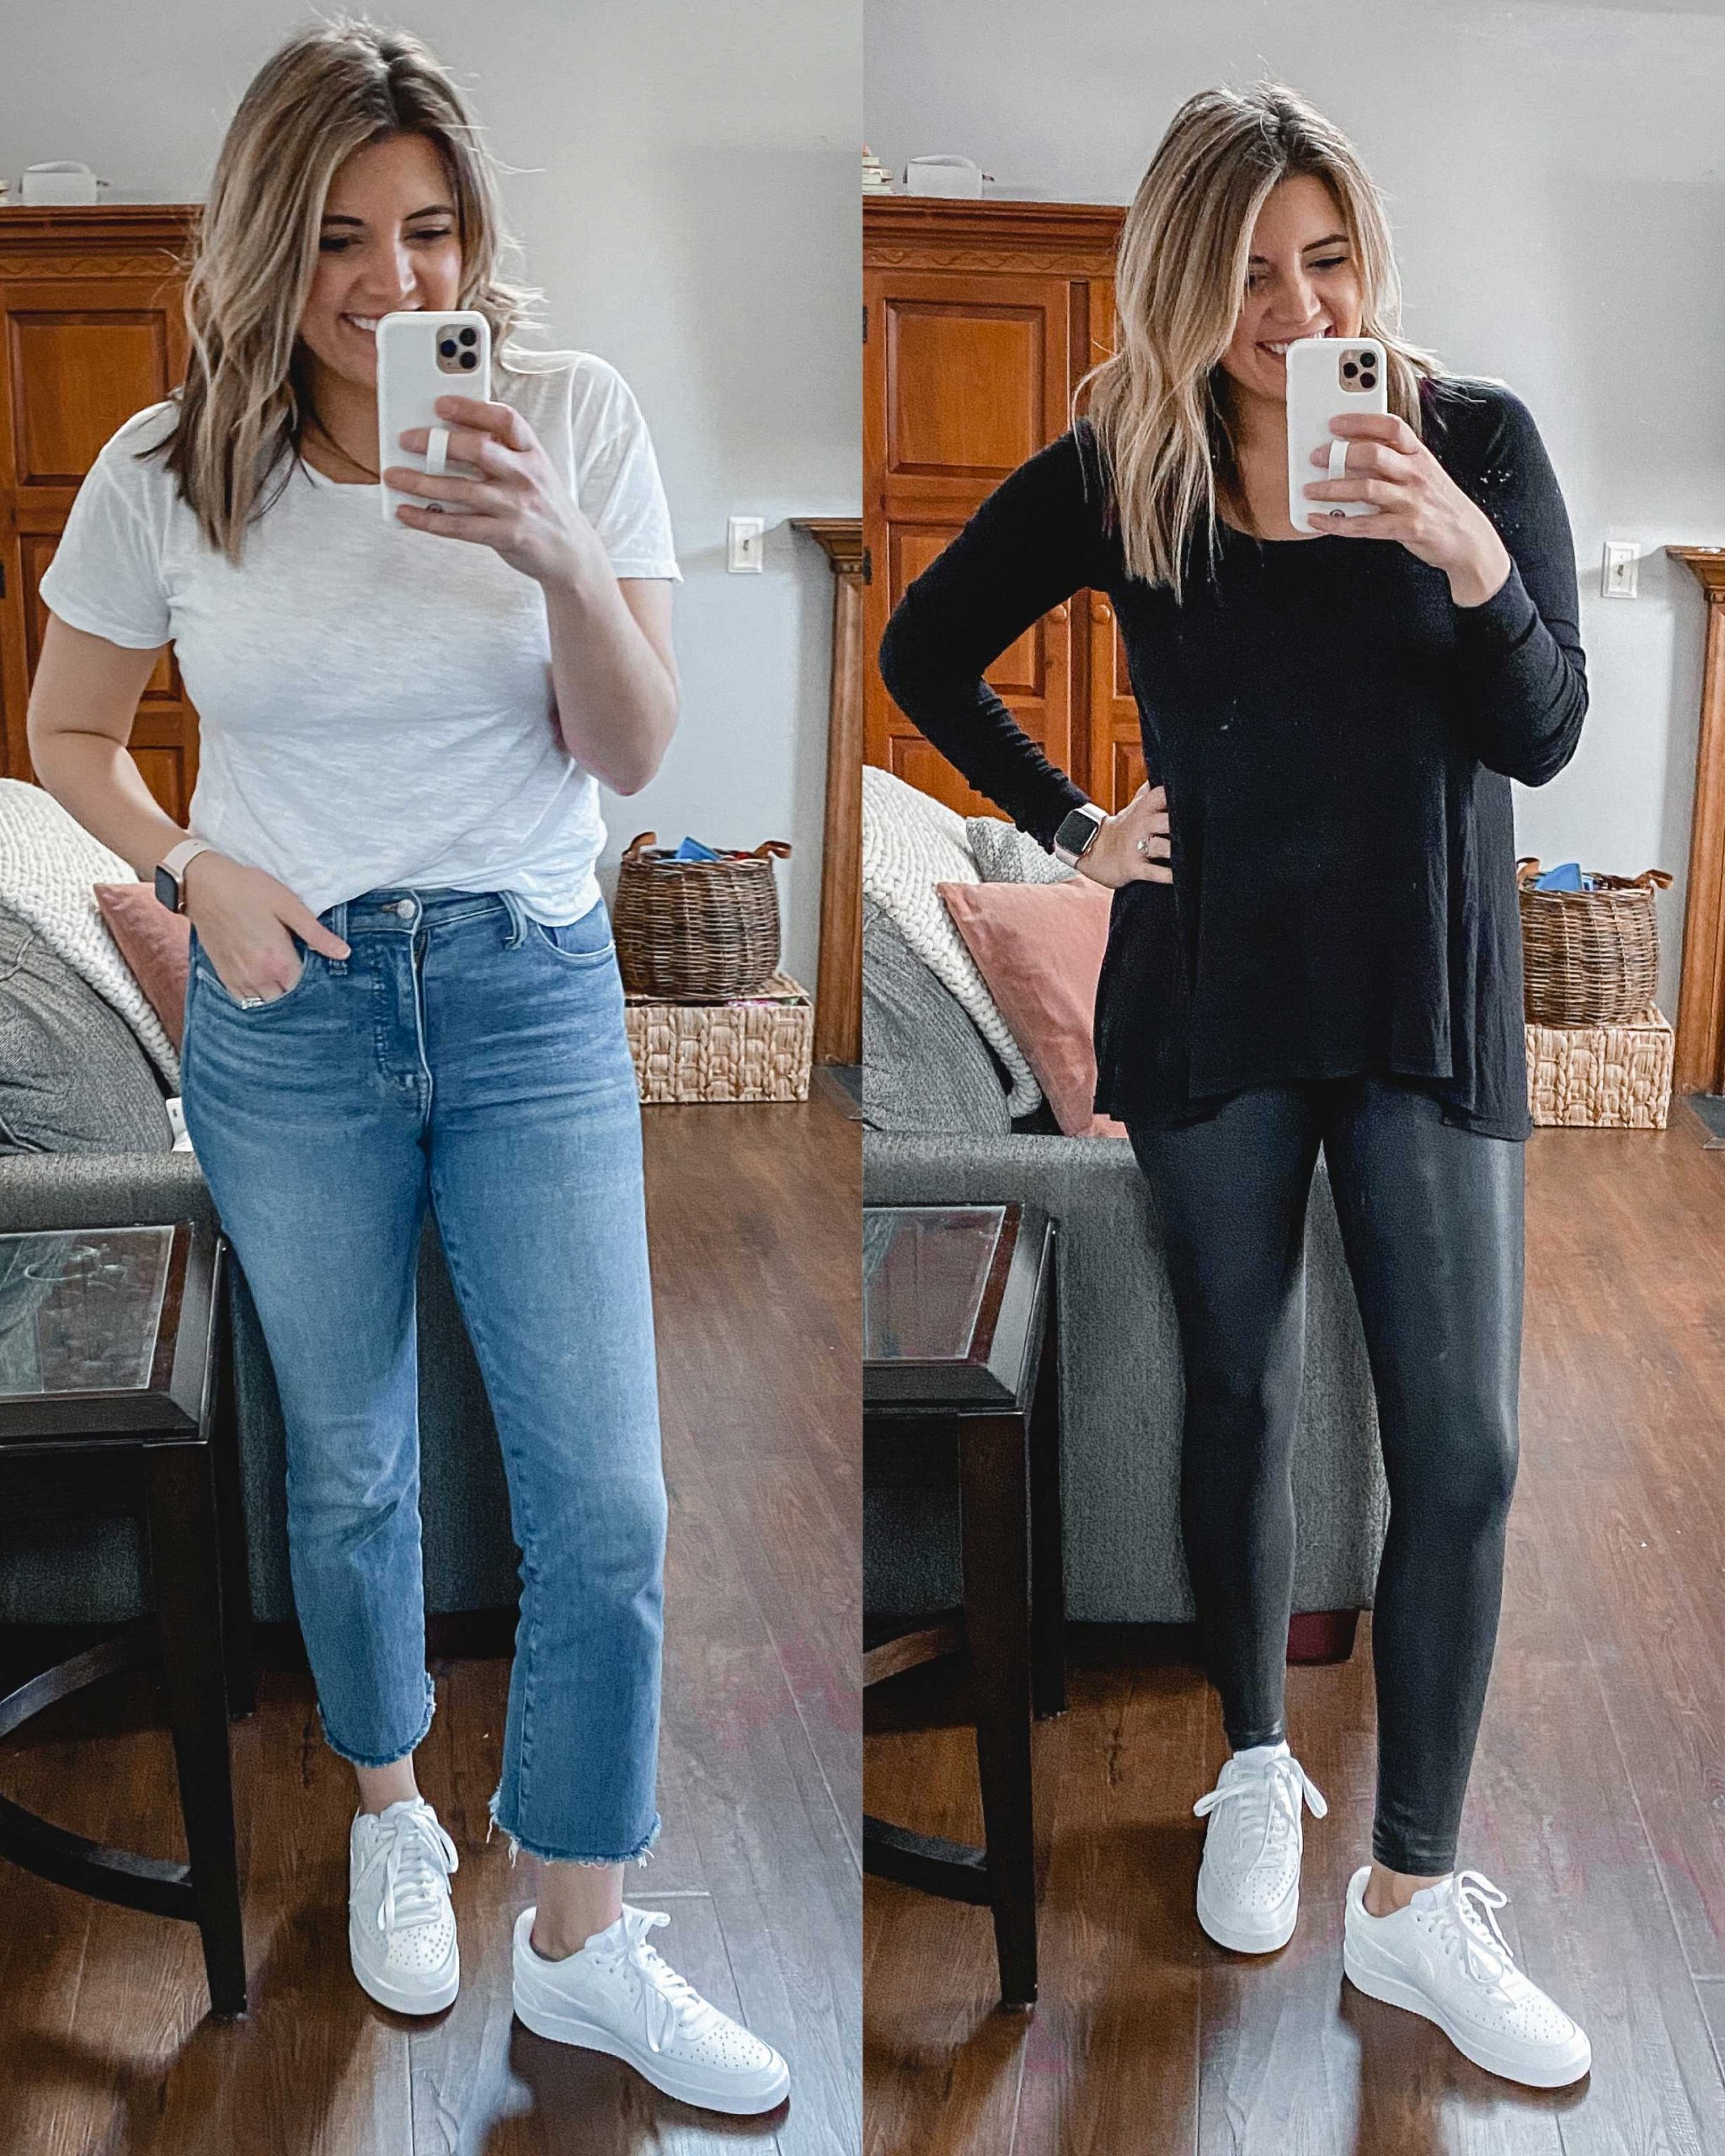 Virginia blogger, Lauren Dix, tries on 10 different pairs of white sneakers for the ultimate white sneaker review! She wears the Nike Court Vision sneakers with both jeans and leggings!